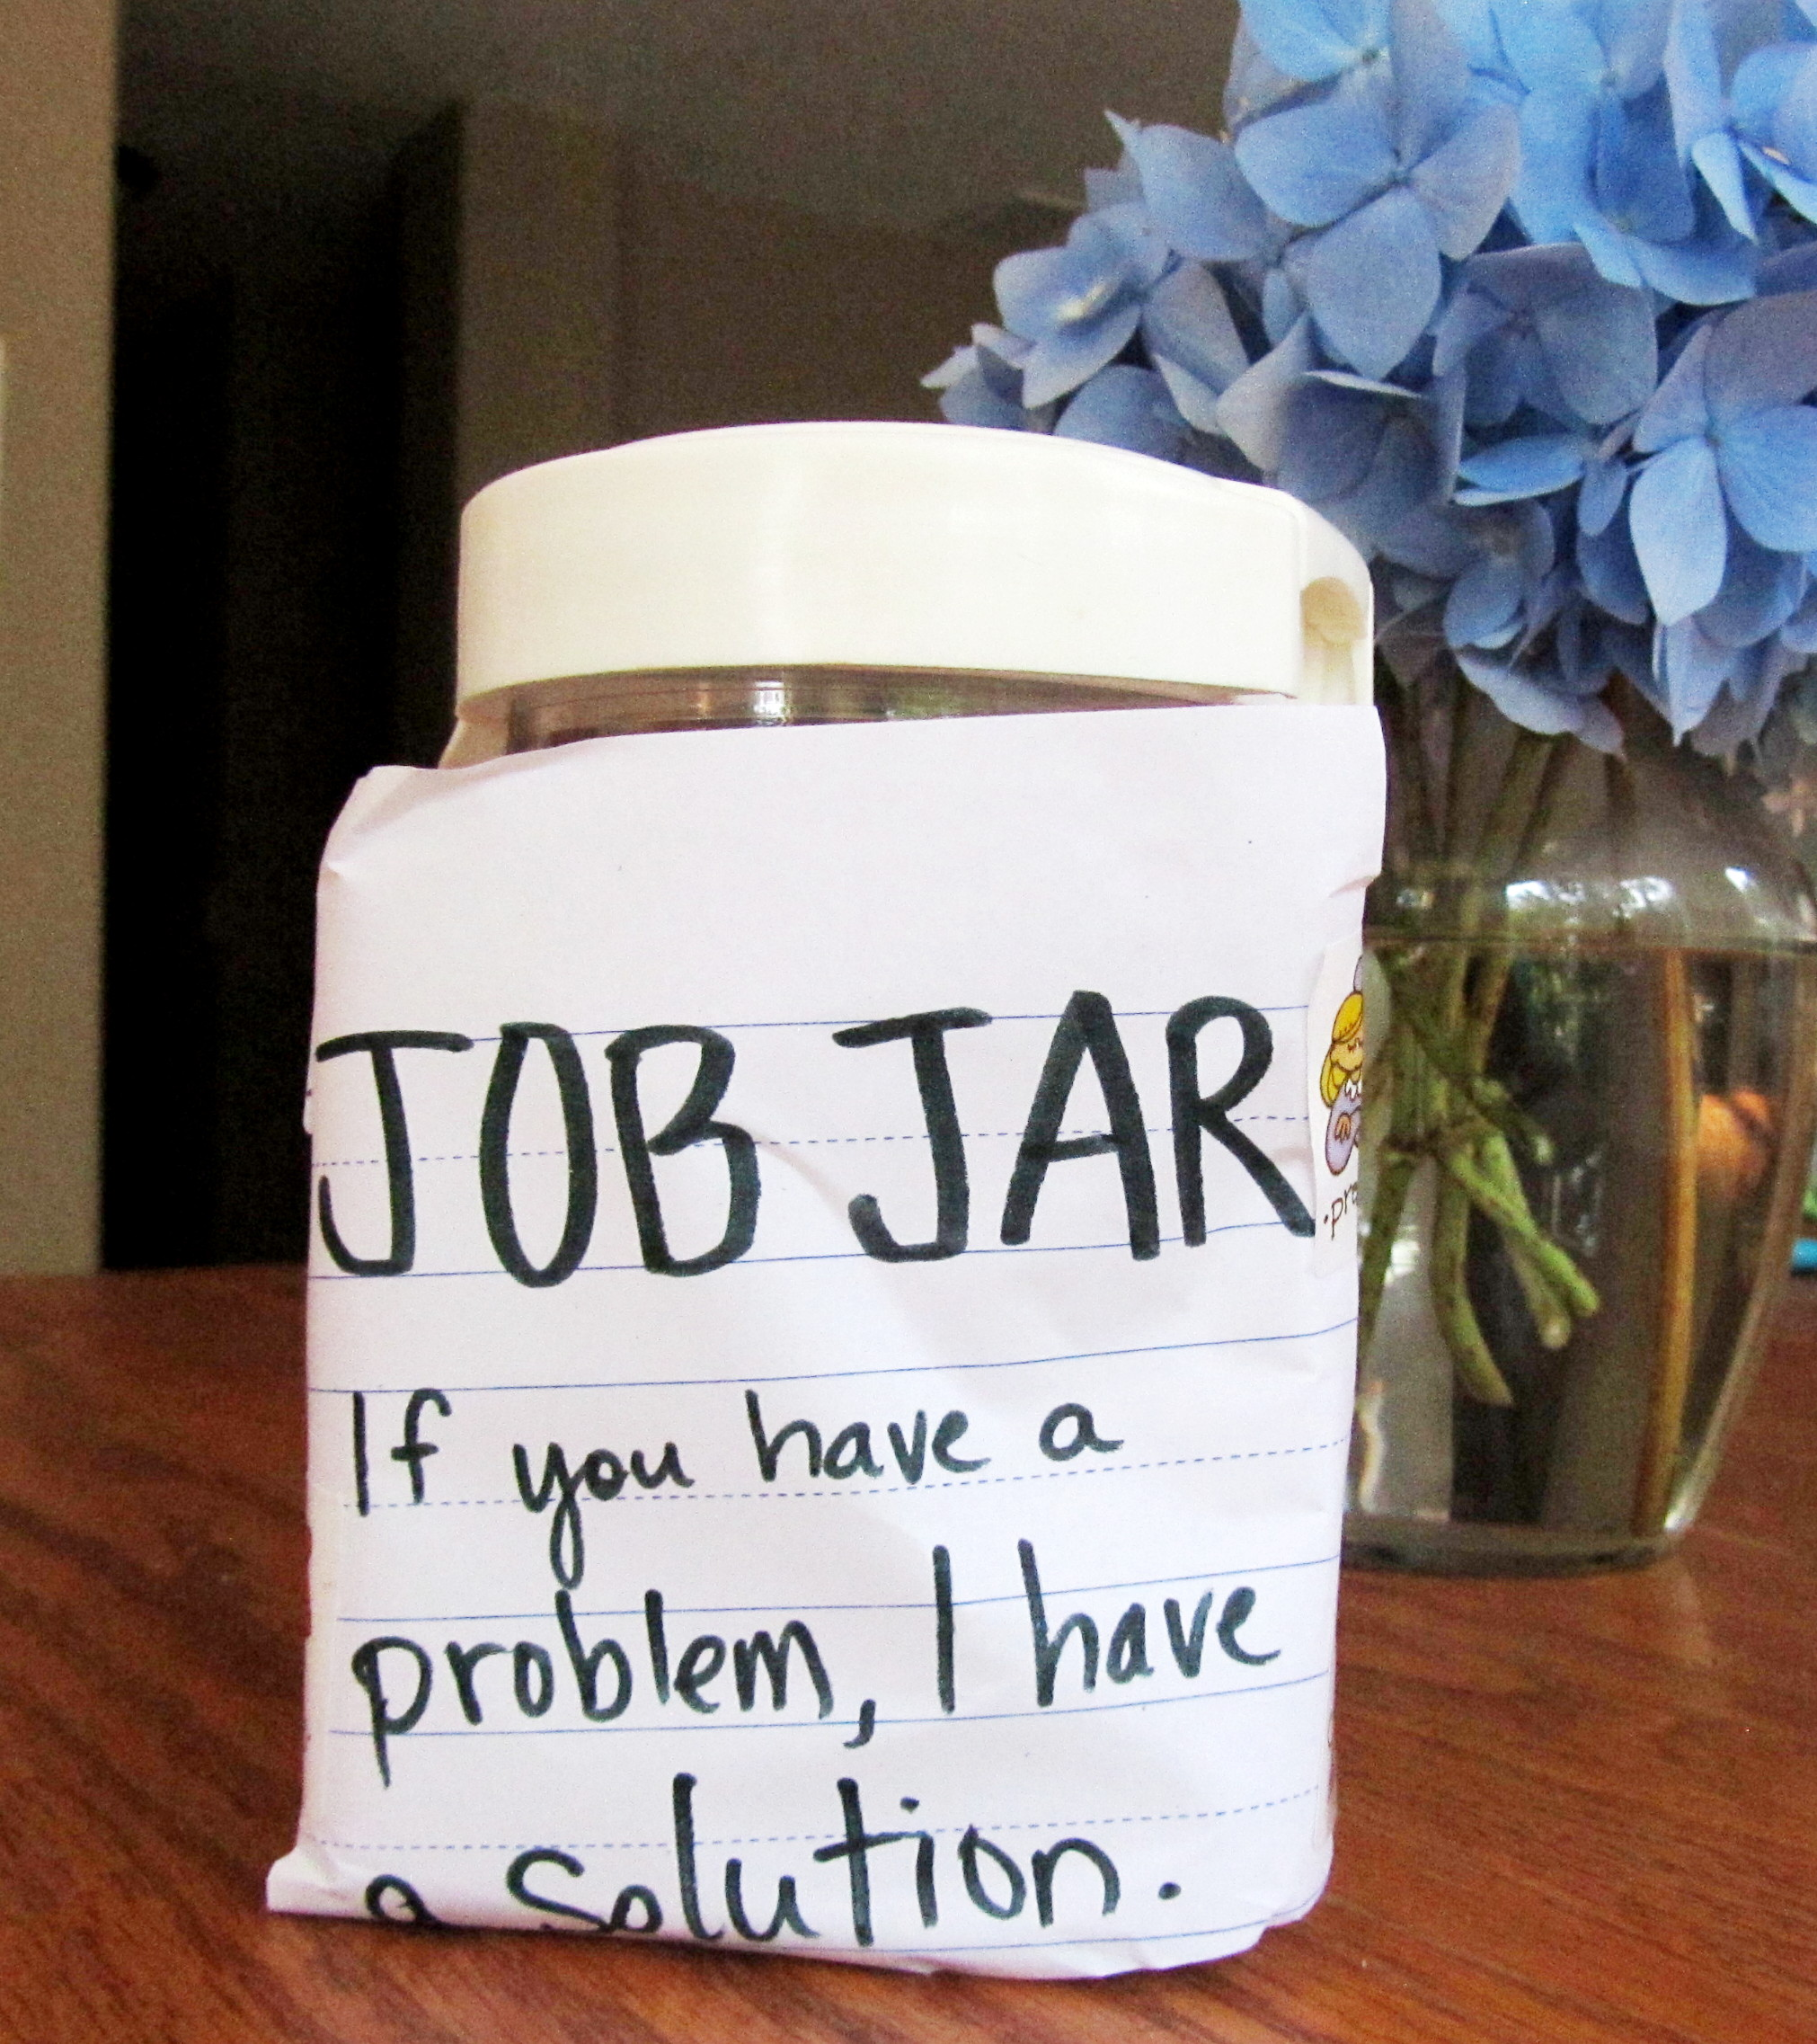 Stolen from http://www.lightbulbbooks.com/blog/2013/11/job-jar-for-tots/